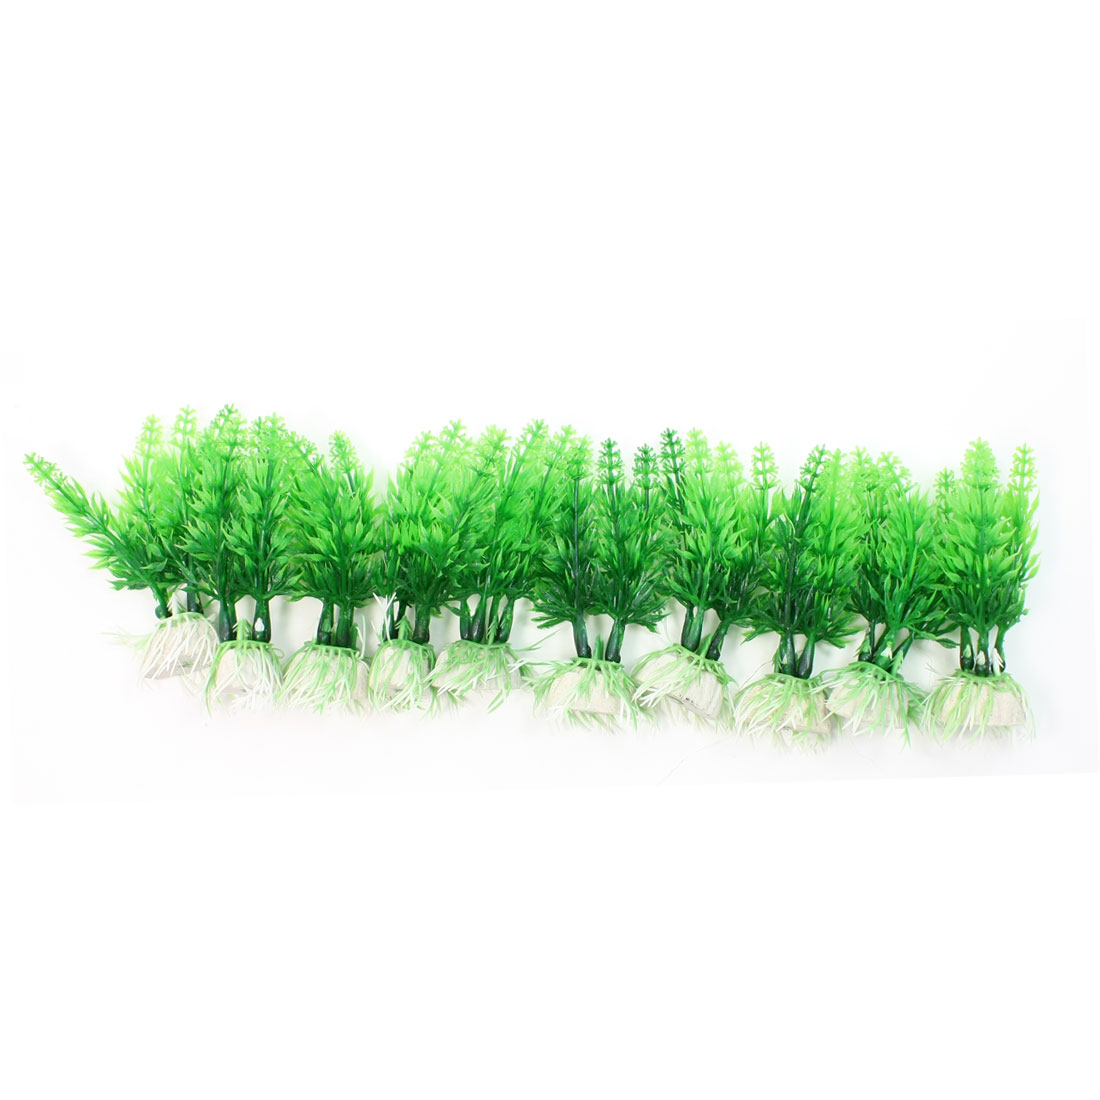 "10Pcs 3.9"" High Underwater Plastic Plants Grass for Fish Tank Aquarium"